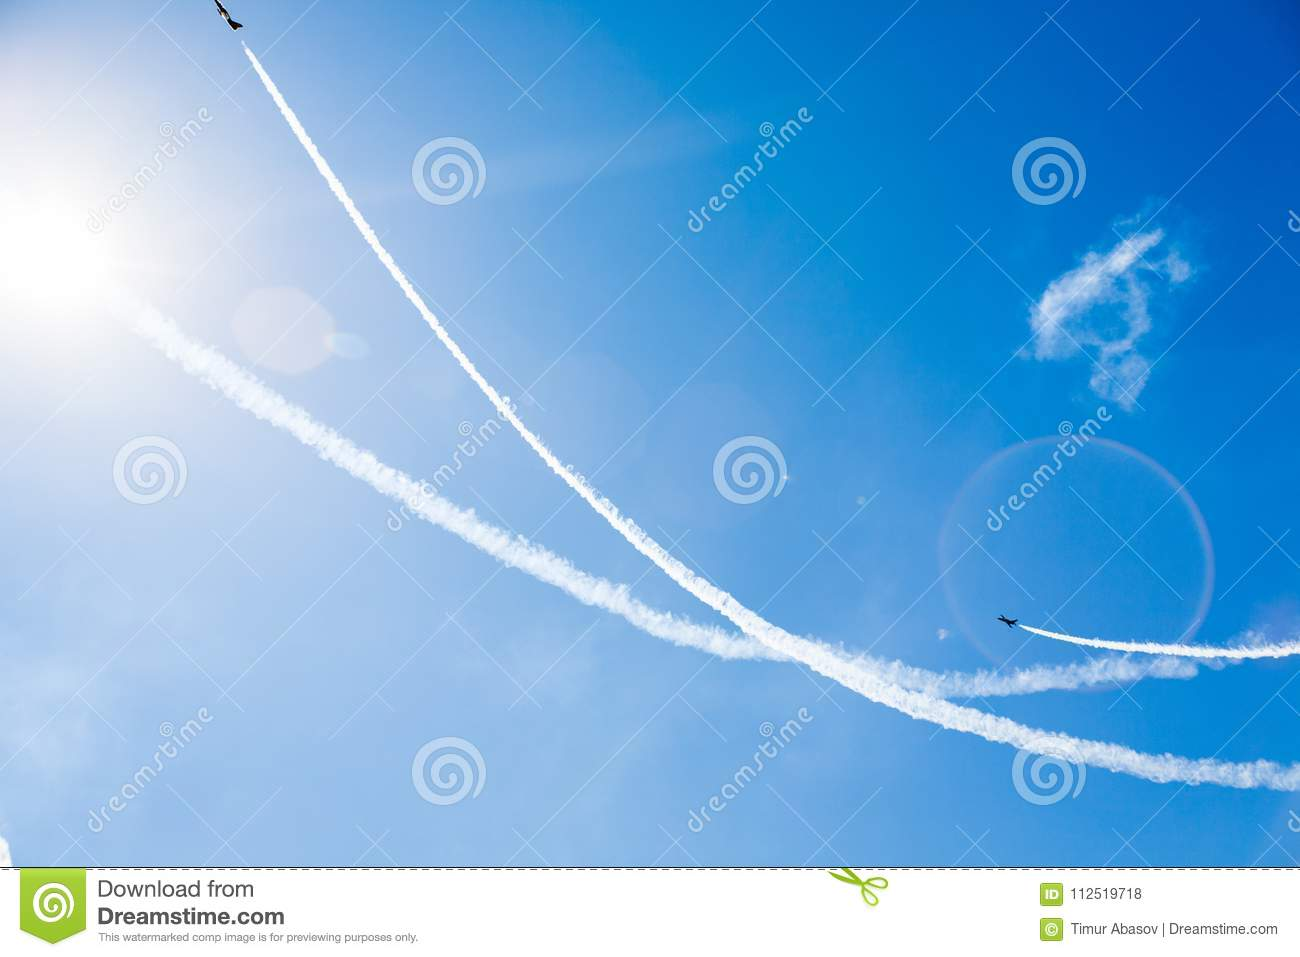 A group of professional pilots of military aircraft of fighters on a sunny clear day shows tricks in the blue sky, leaving beauti